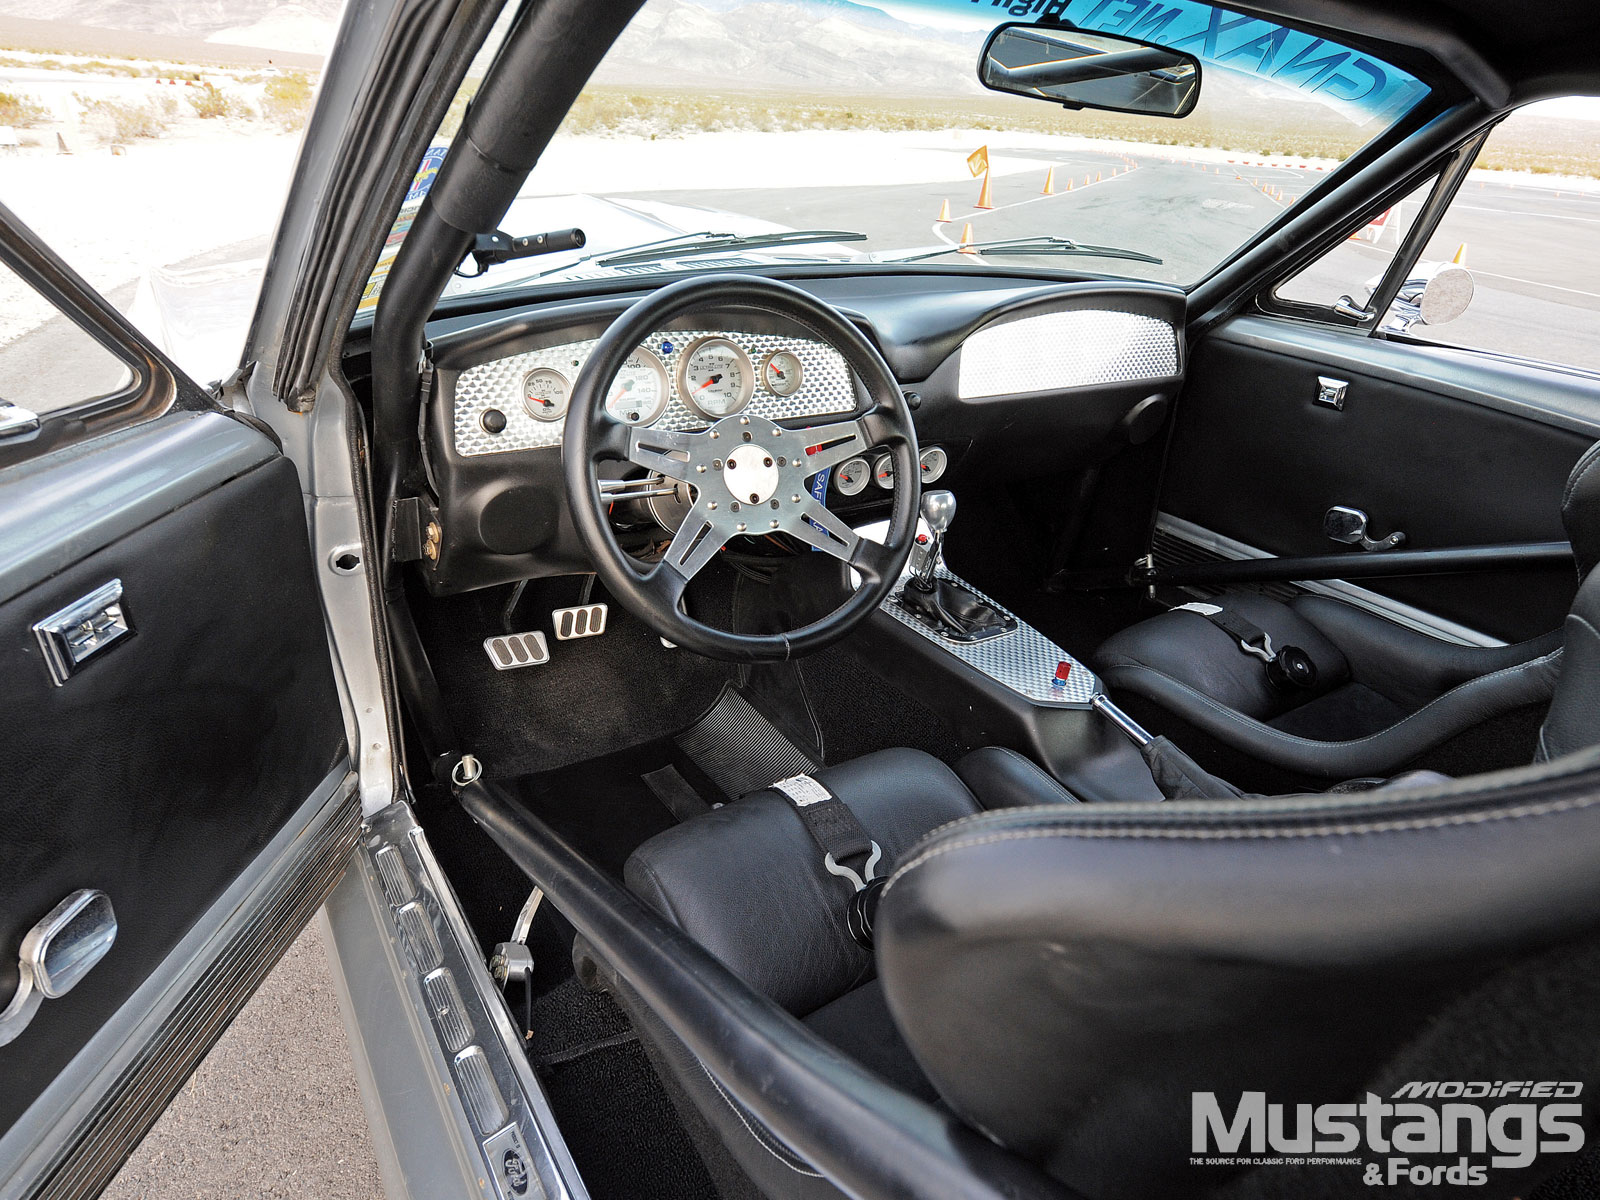 1968 Ford Mustang Fastback Steering Wheel And Dashboard